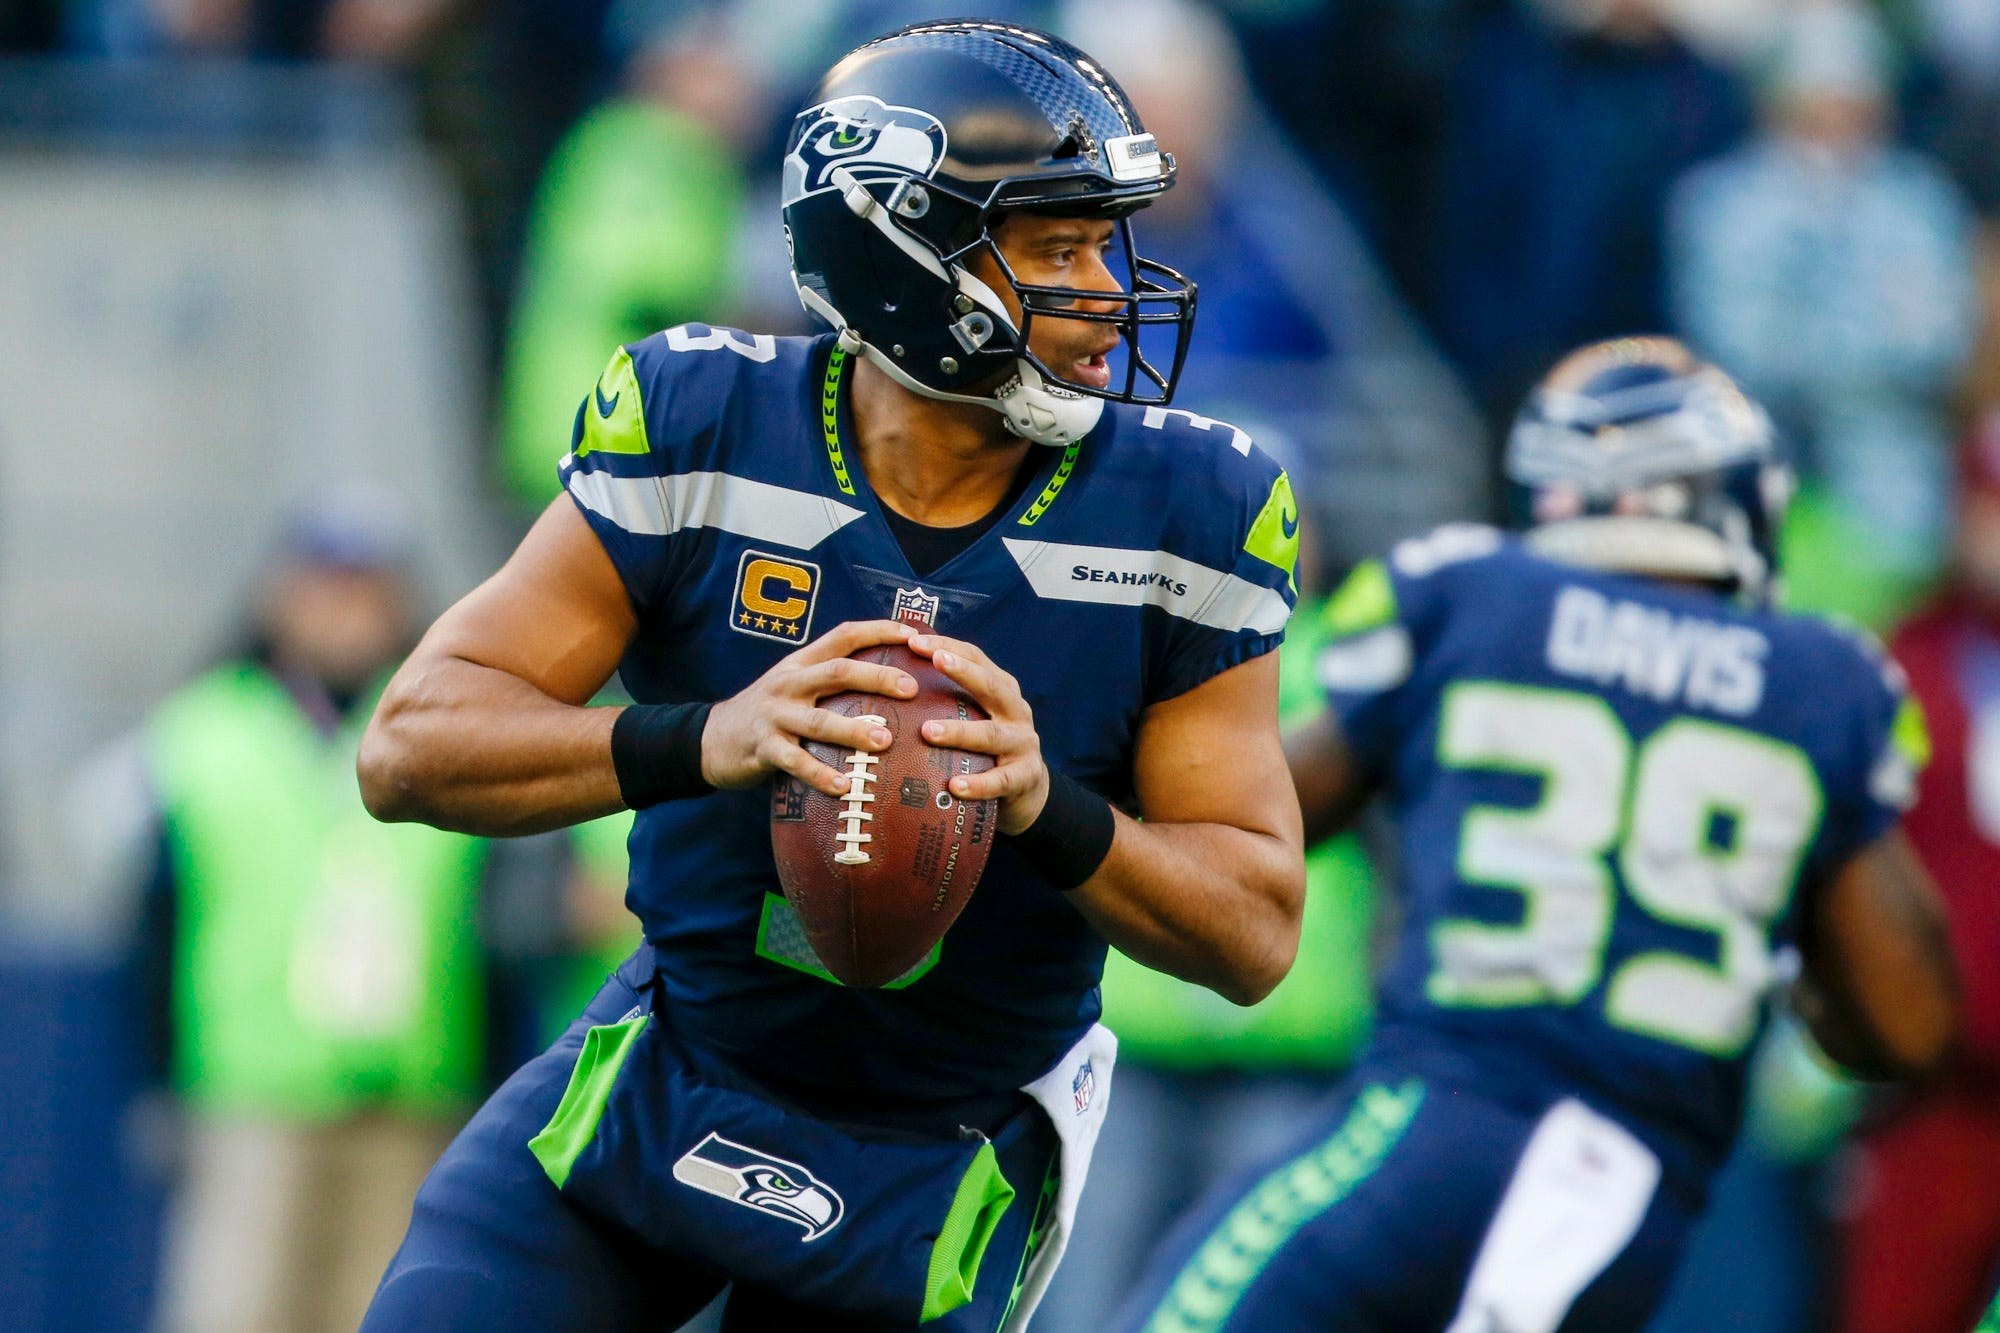 Seahawks' Russell Wilson will mentor top prospects in ESPN series